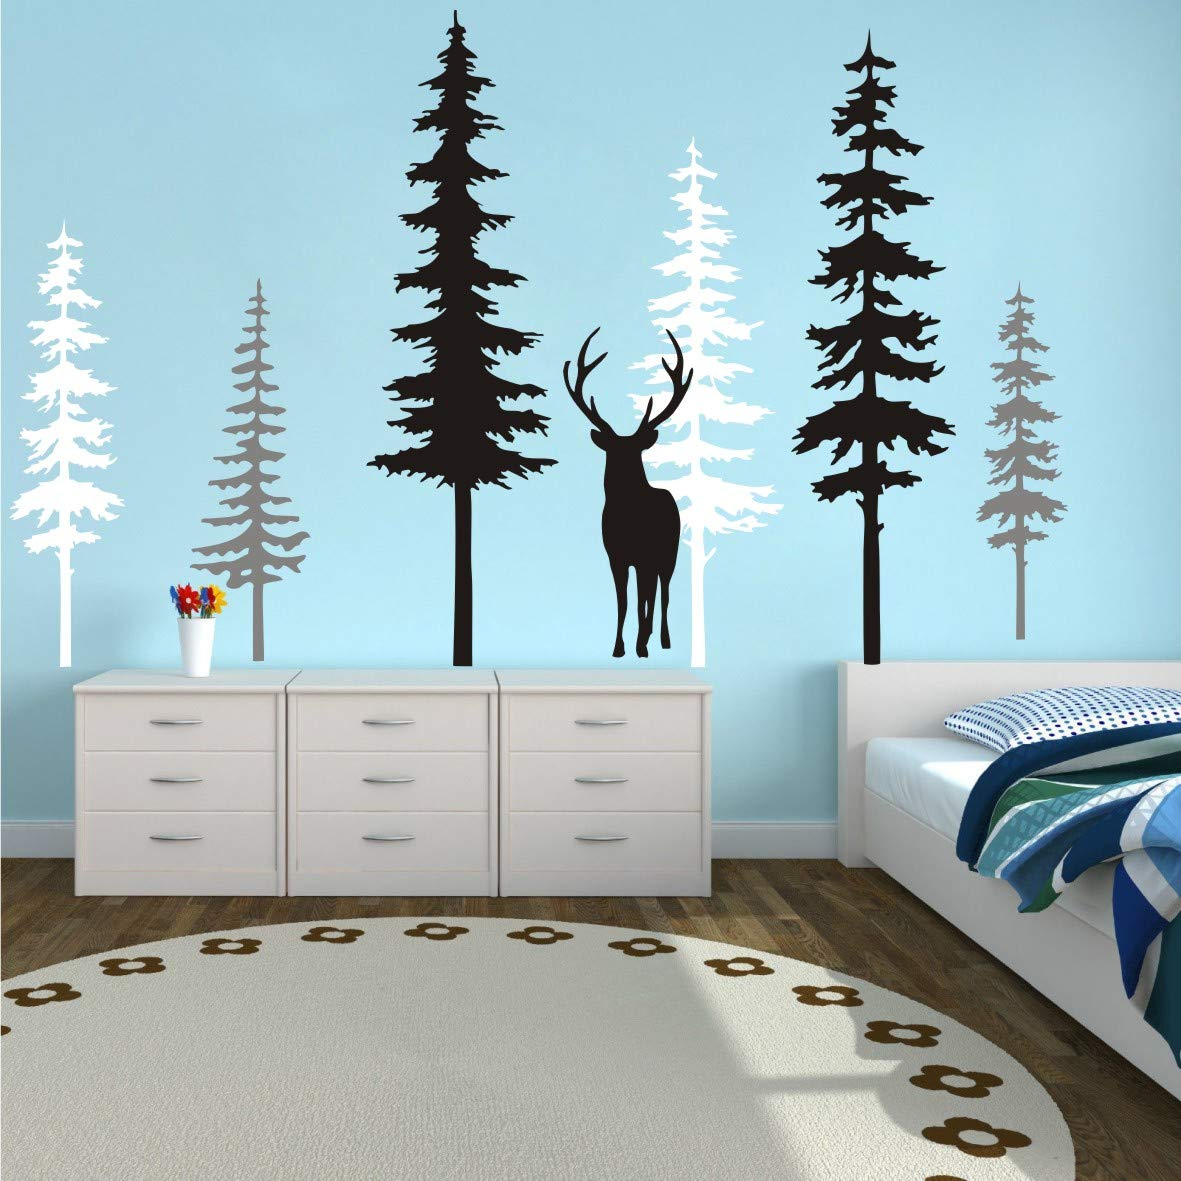 Nursery Animals Woodland Forest Bears Printed Wall Decal Set Kids Bedroom Decor Decals Stickers Vinyl Art Home Decor